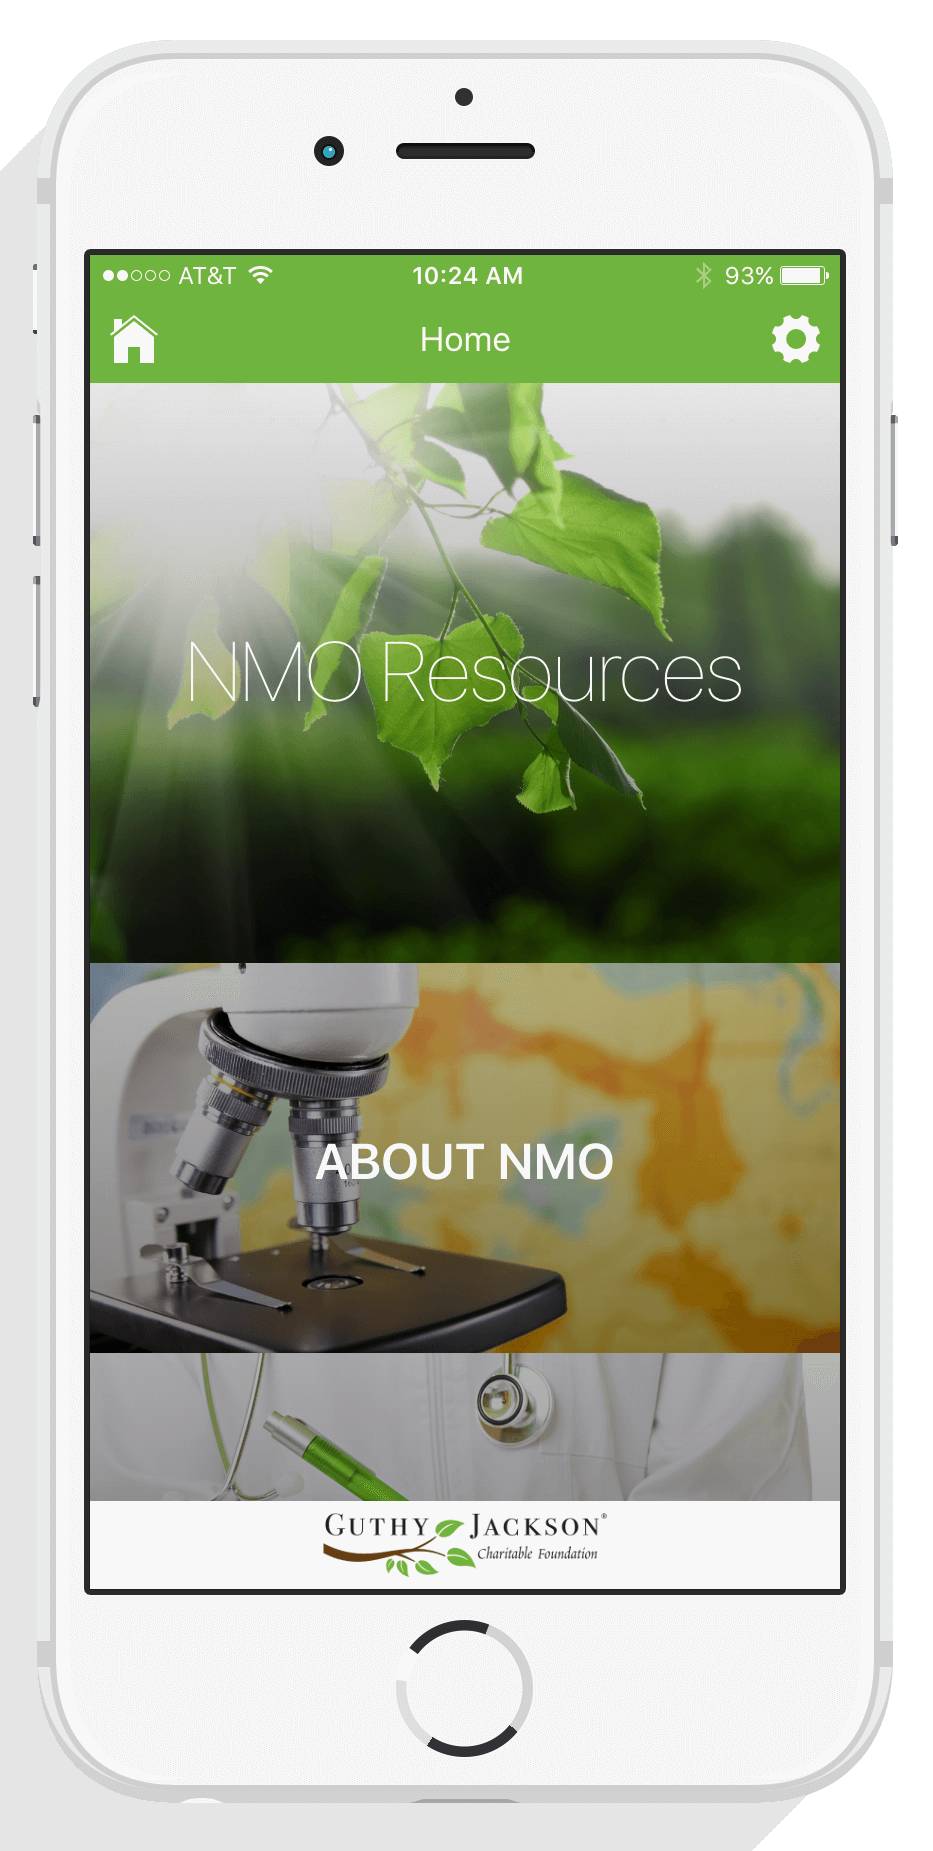 App Design and Development – NMO Resources